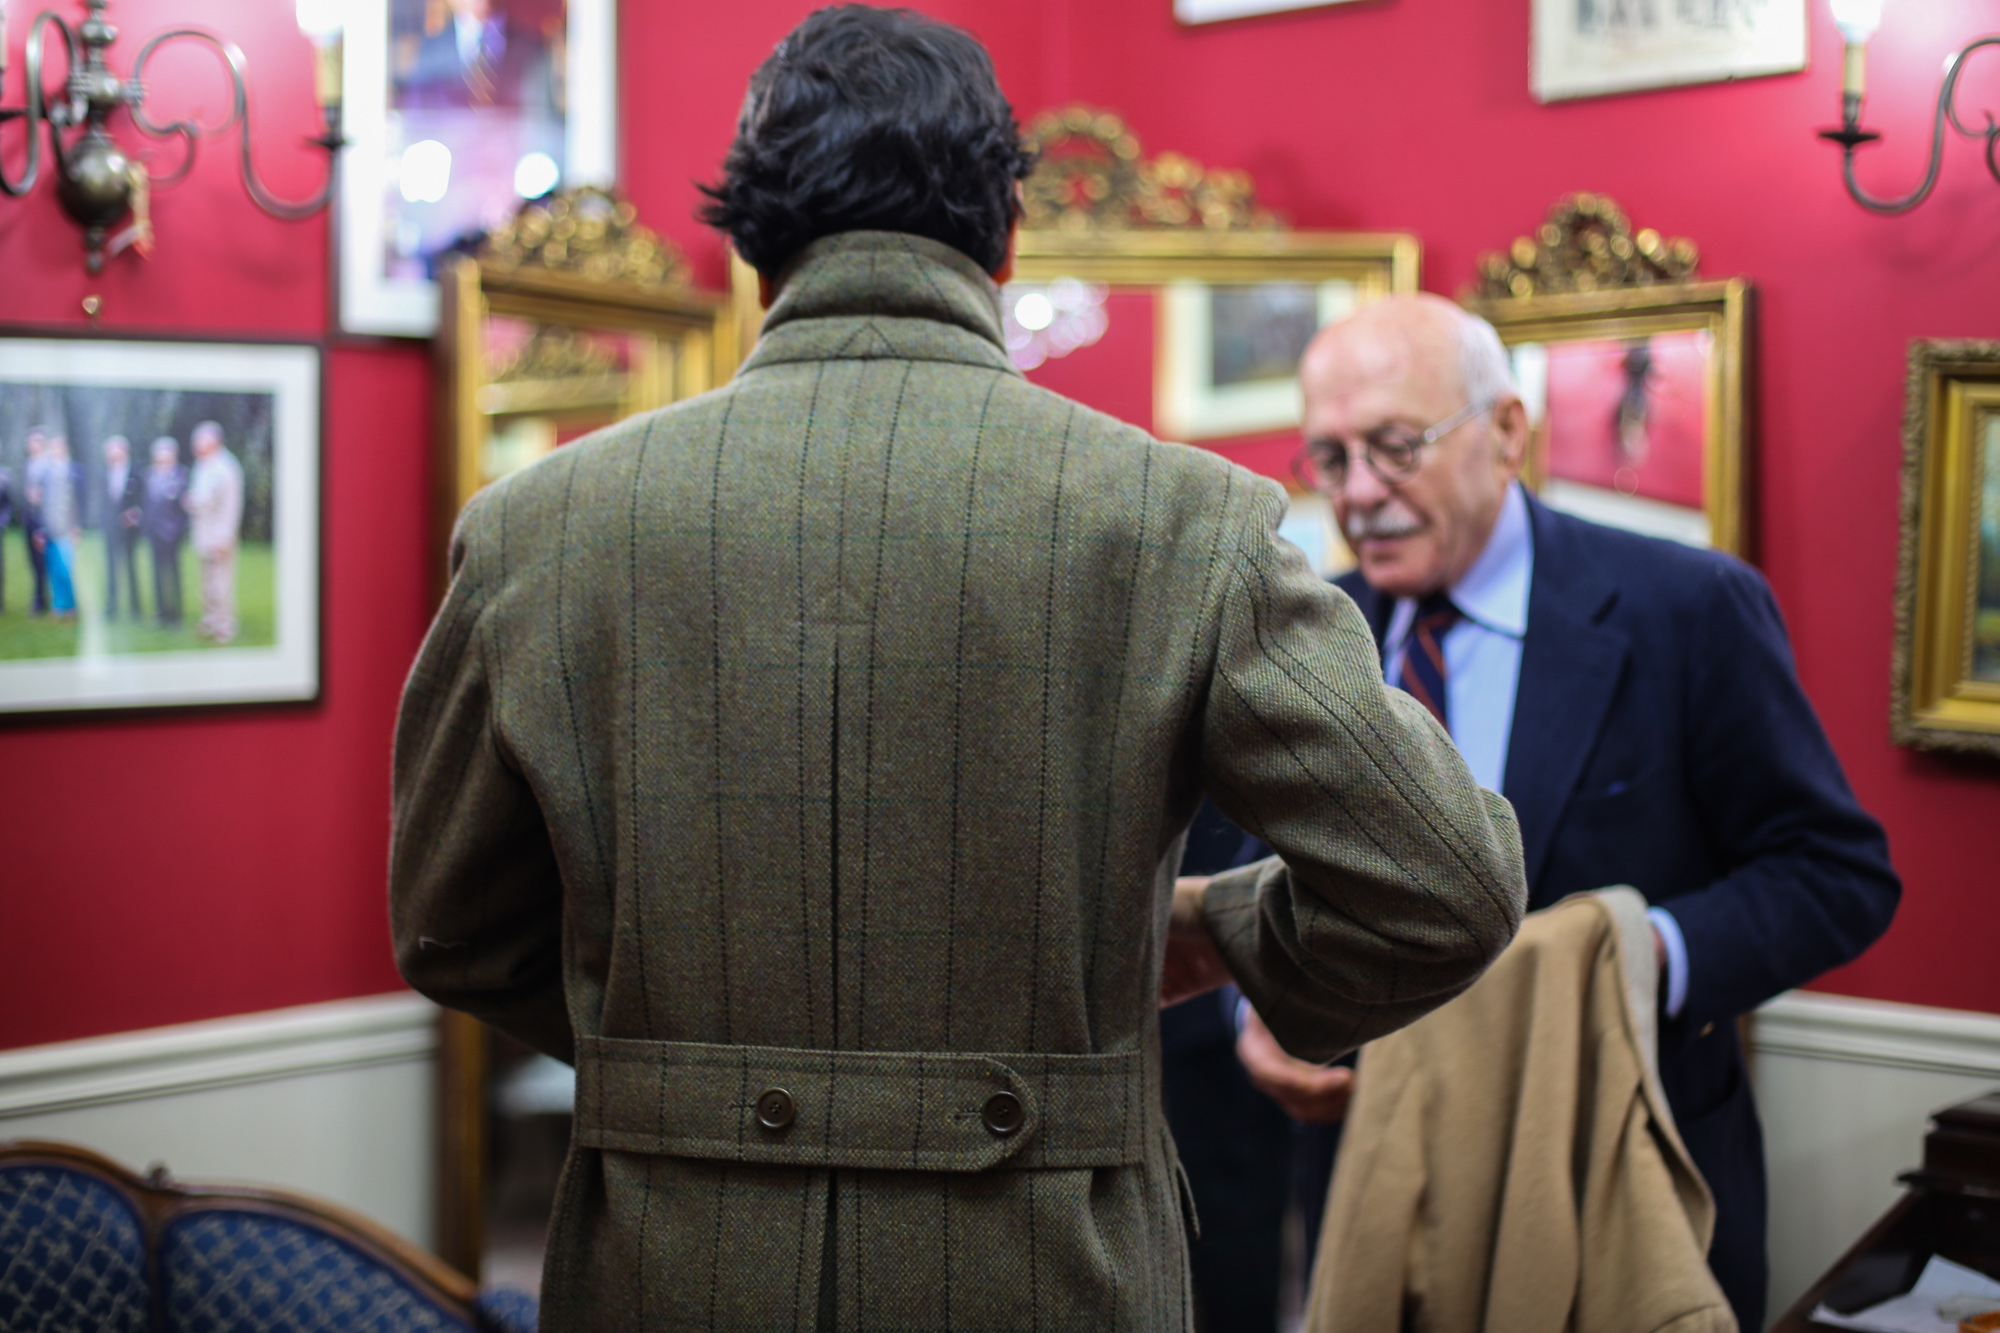 The Neapolitan Chapter: Antonio Panico A one-on-one with one of the godfathers of the Neapolitan jacket